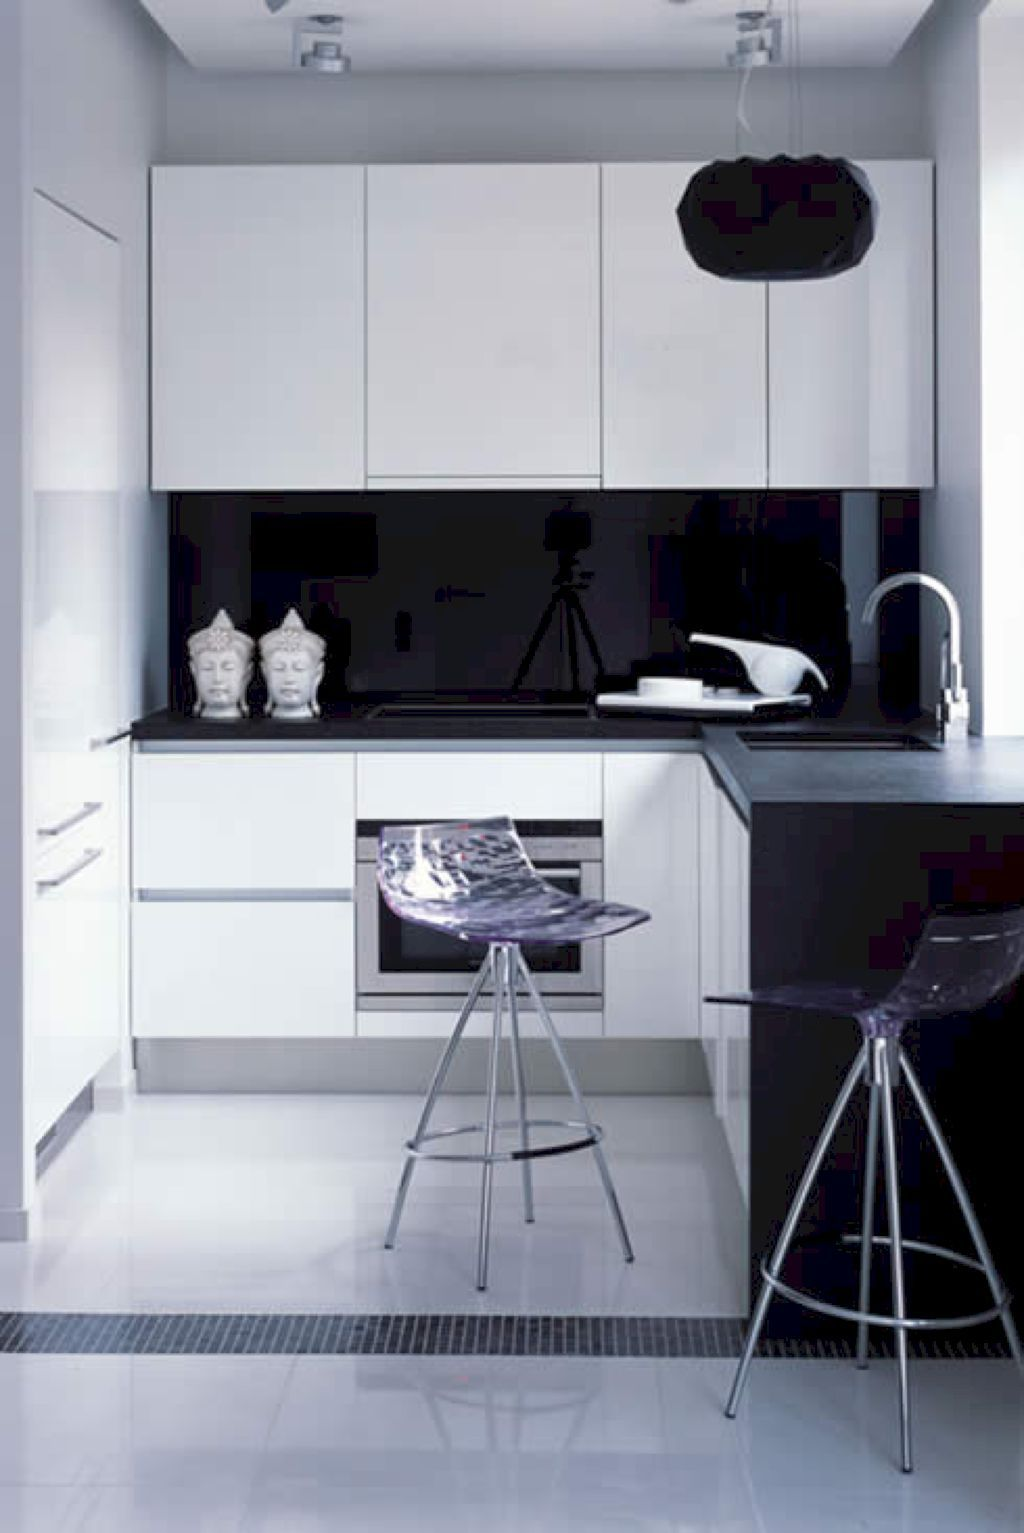 41 small apartment kitchen ideas - Modern Kitchen For Small Apartment